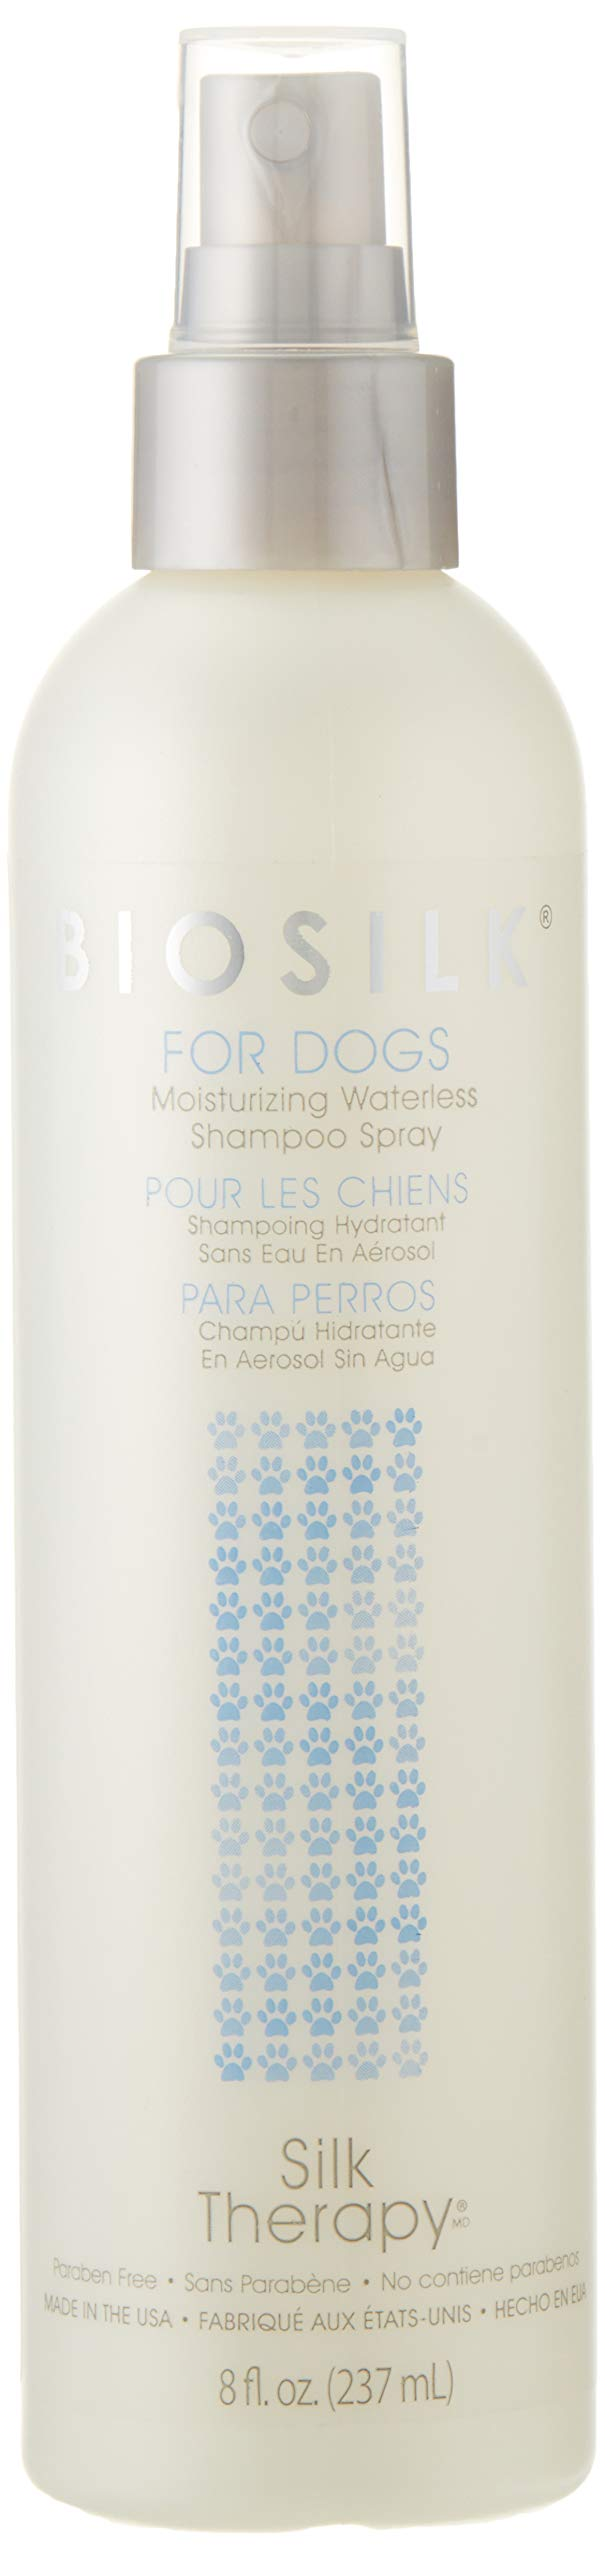 BioSilk for Dogs Silk Therapy Deep Moisture Waterless Shampoo Spray | Best Waterless Shampoo Spray For All Dogs and Puppies, Pack of 2 by BioSilk for Pets (Image #1)